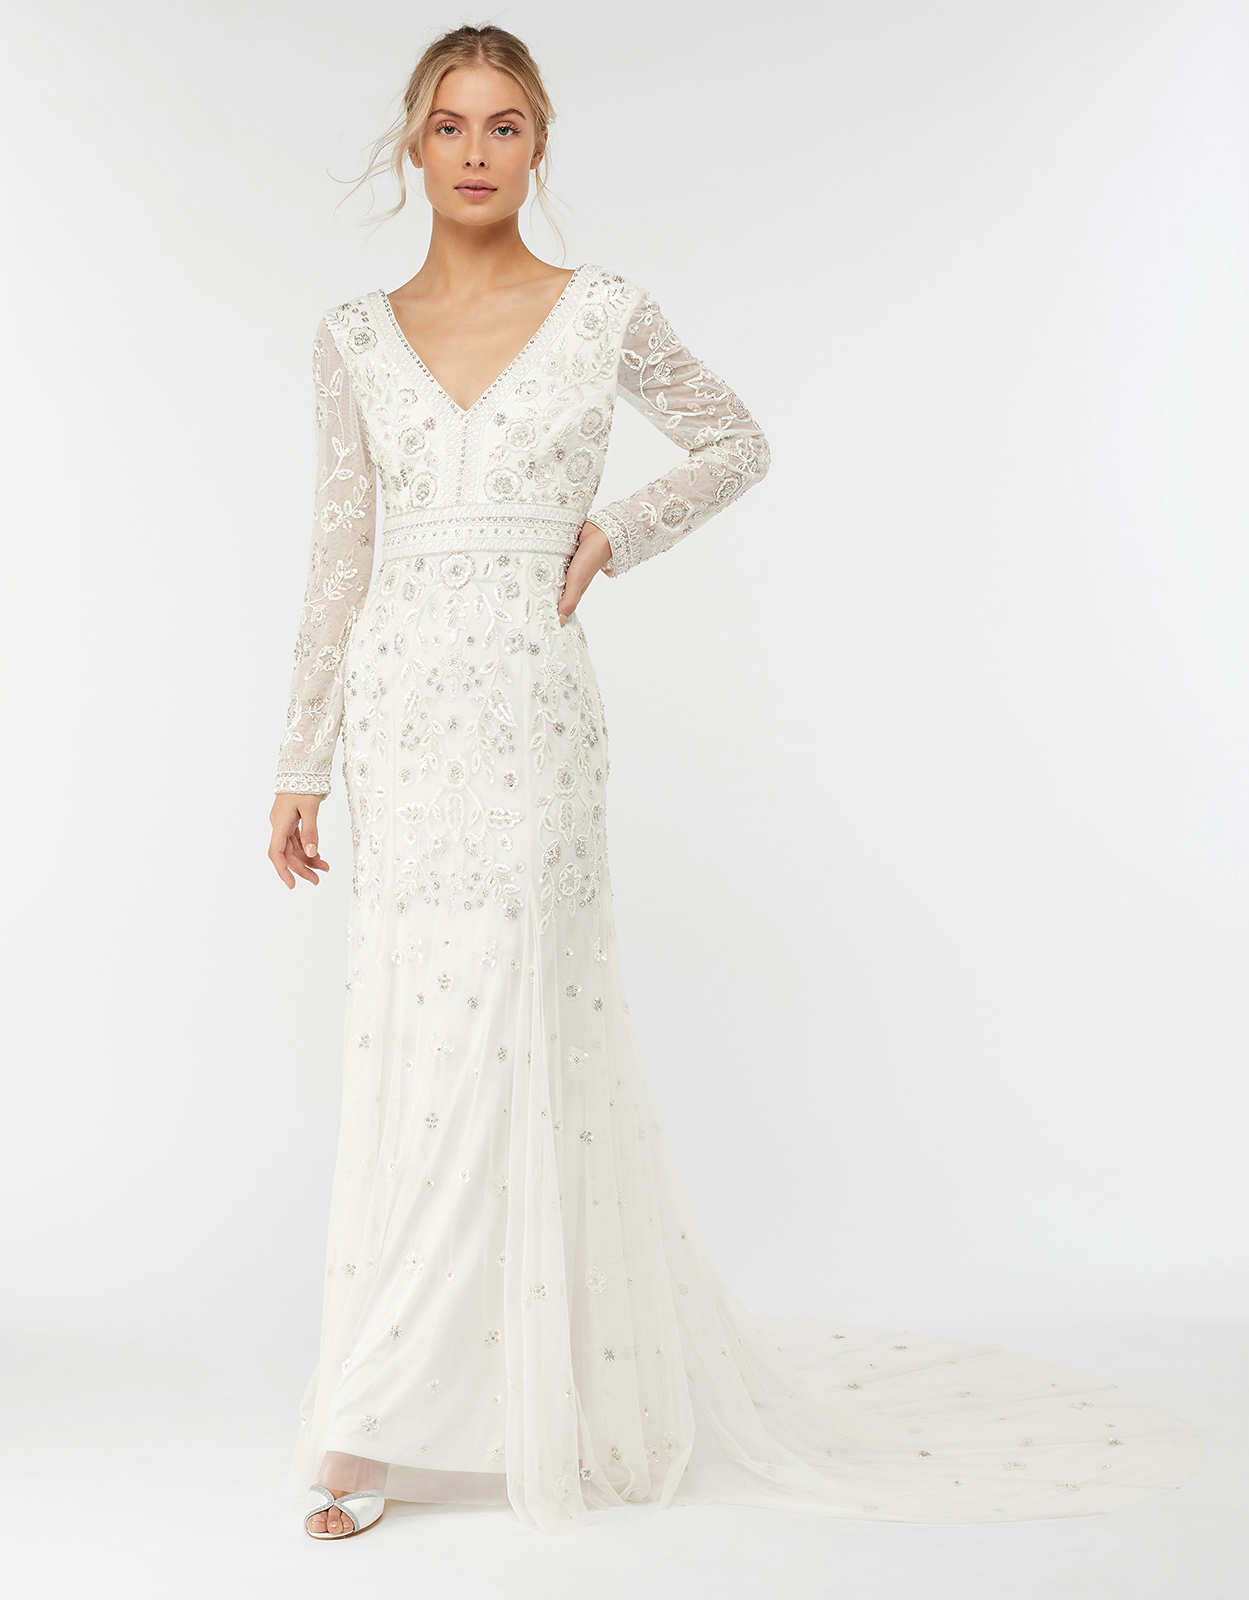 Monsoon Elizabeth Embellished Wedding Dress